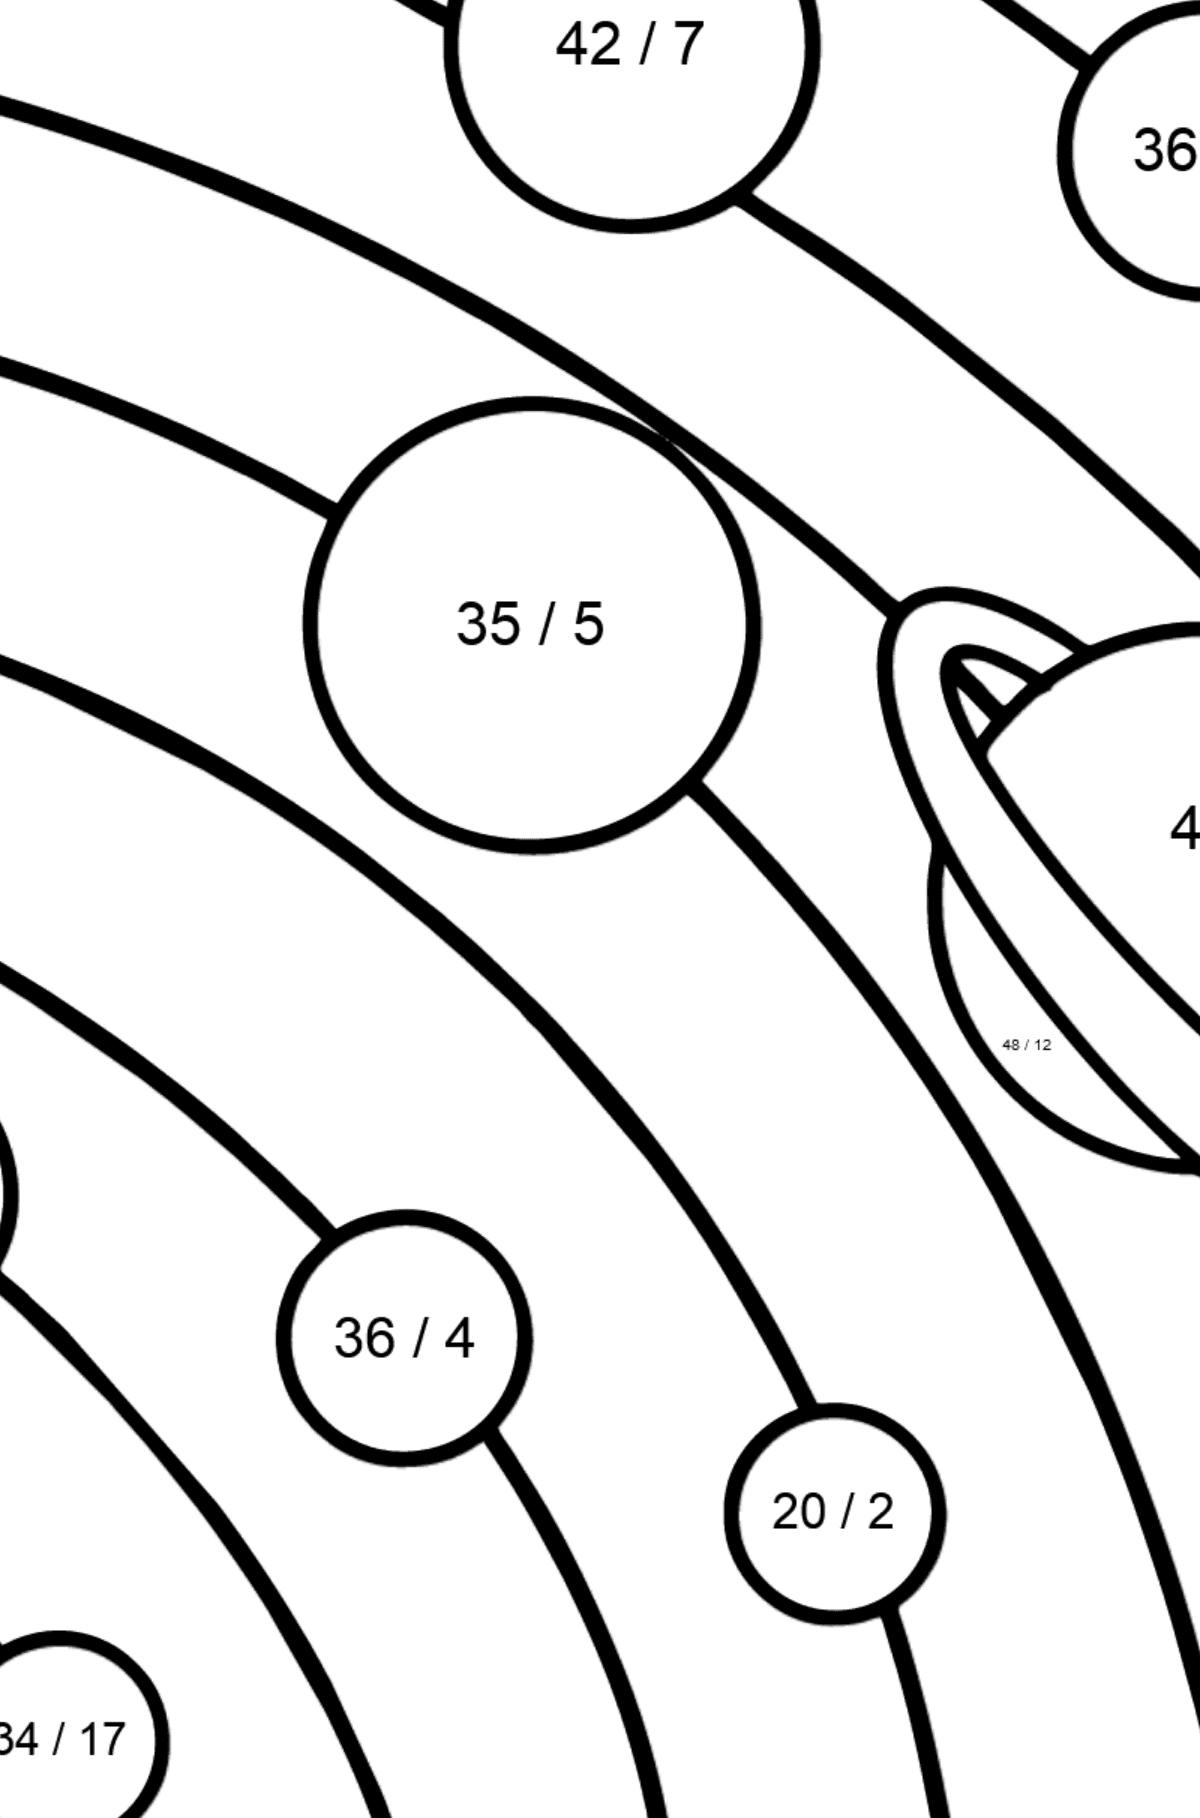 Solar System - Simple coloring page - Math Coloring - Division for Kids